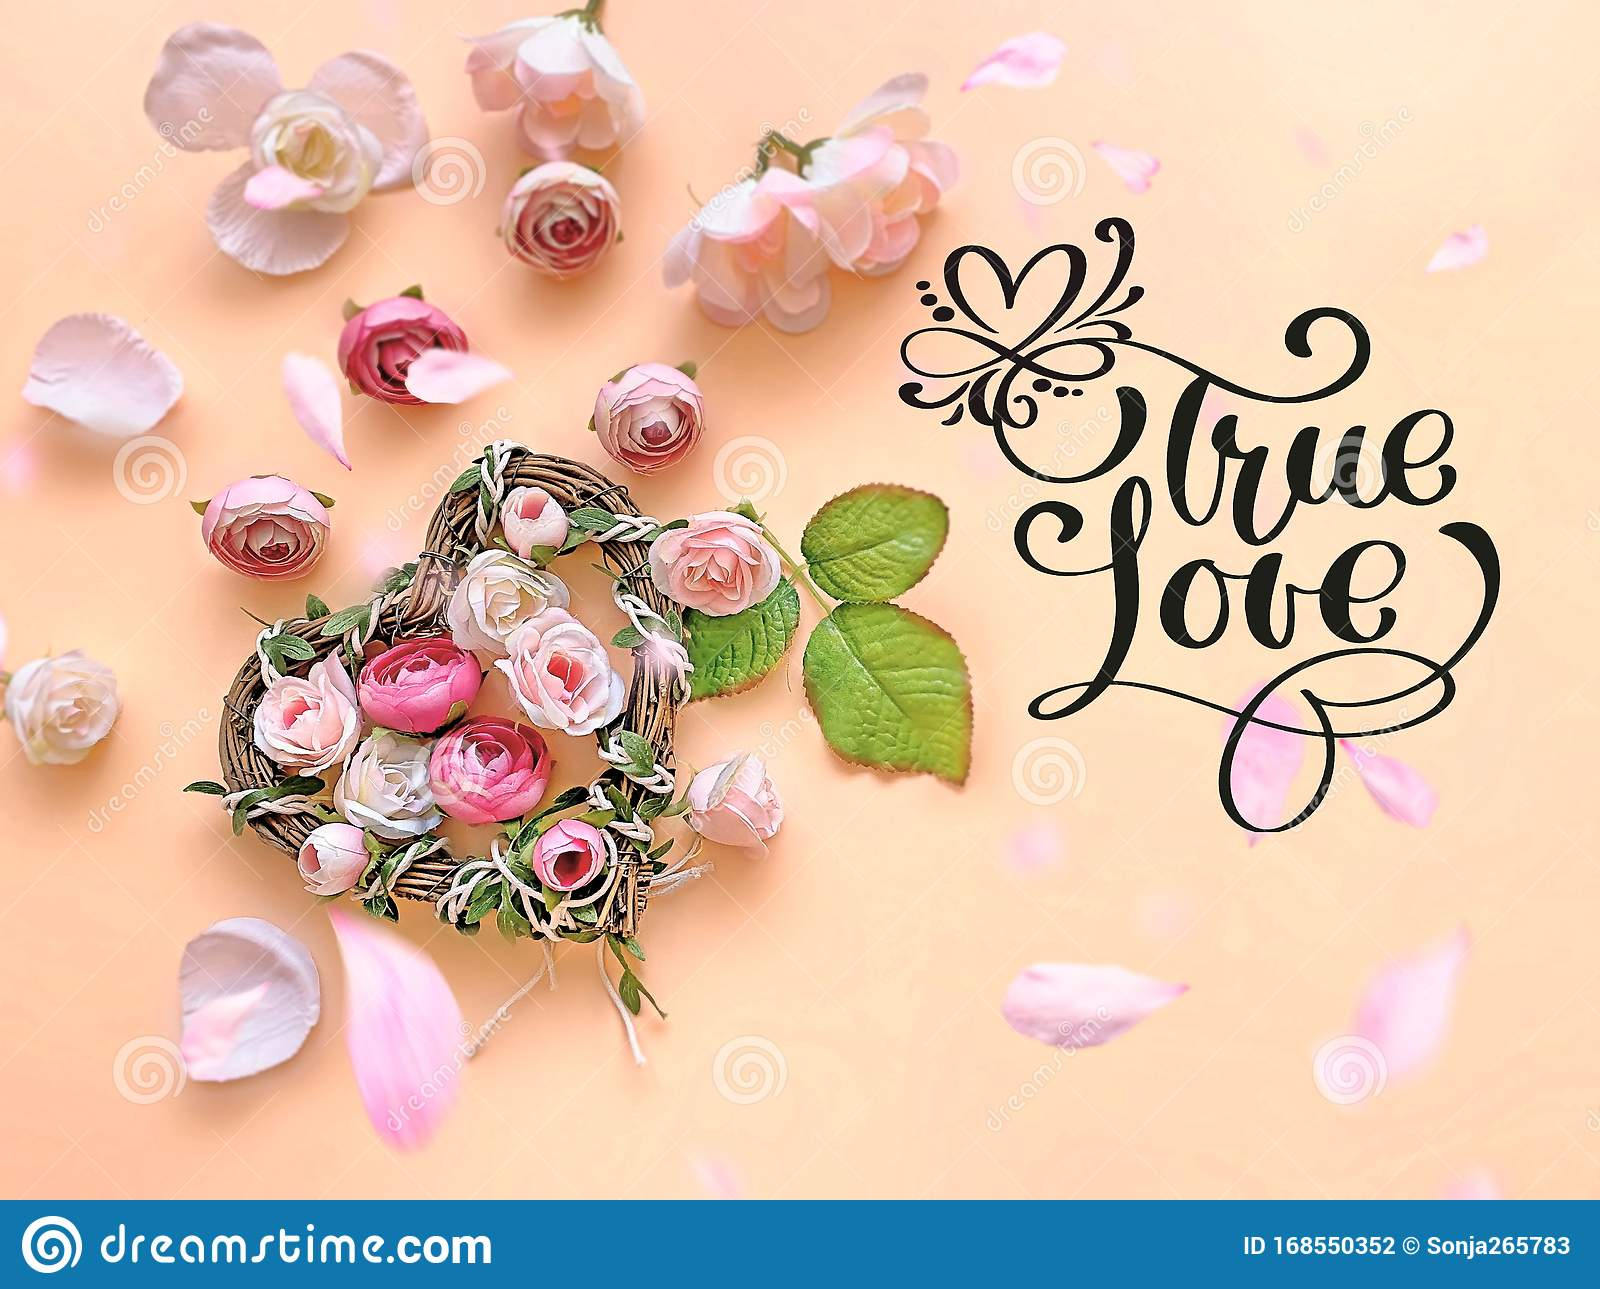 Happy Womens Day Greetings Wedding Valentine Friendship Love Best Wishes Greetings Card Wishes Quotes Text On Romantic Flo Stock Photo Image Of Copy Background 168550352